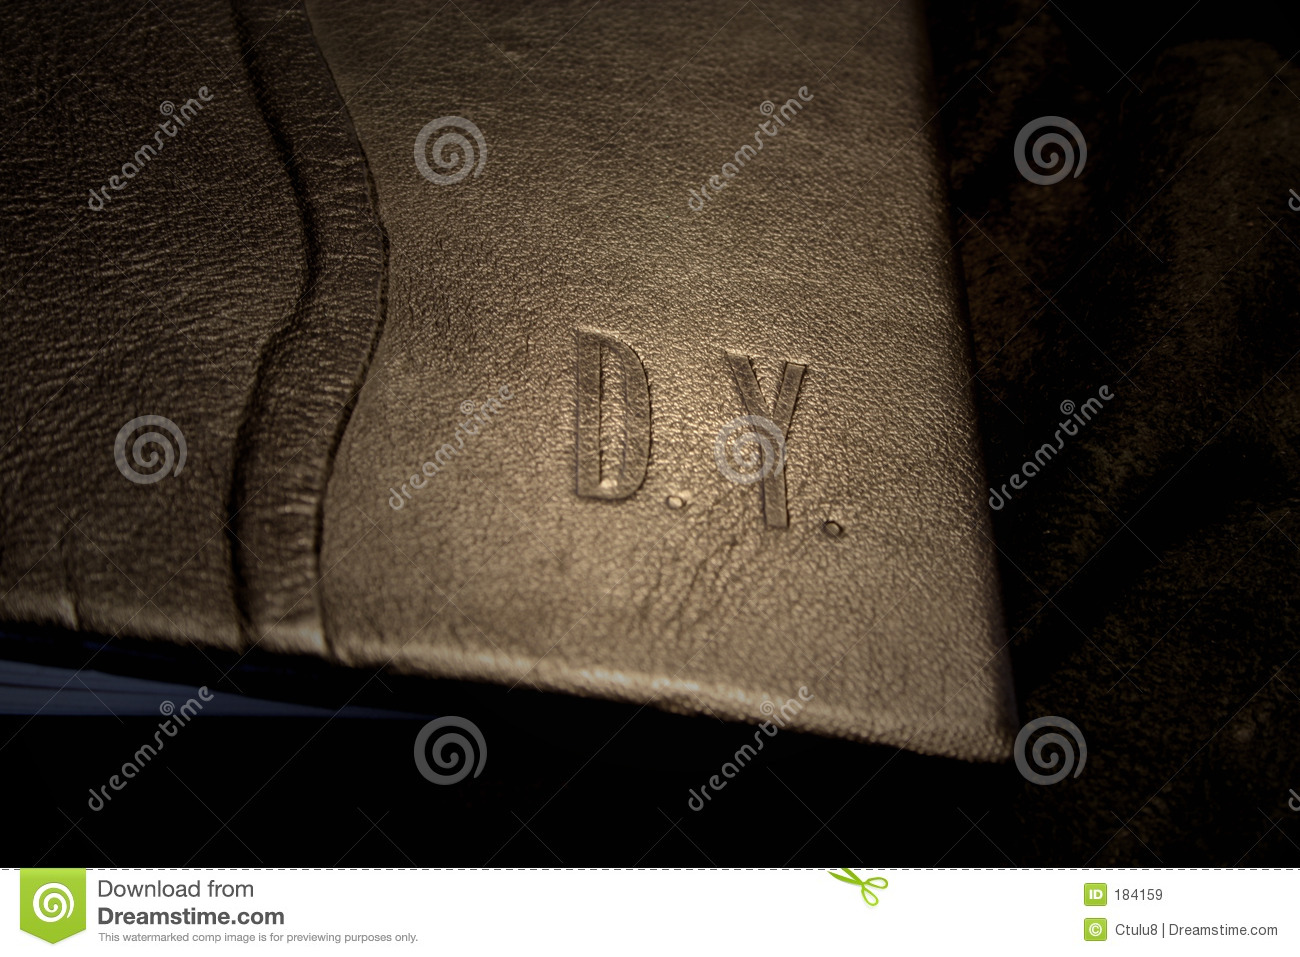 Book Cover Images Royalty Free : Leather book cover royalty free stock images image